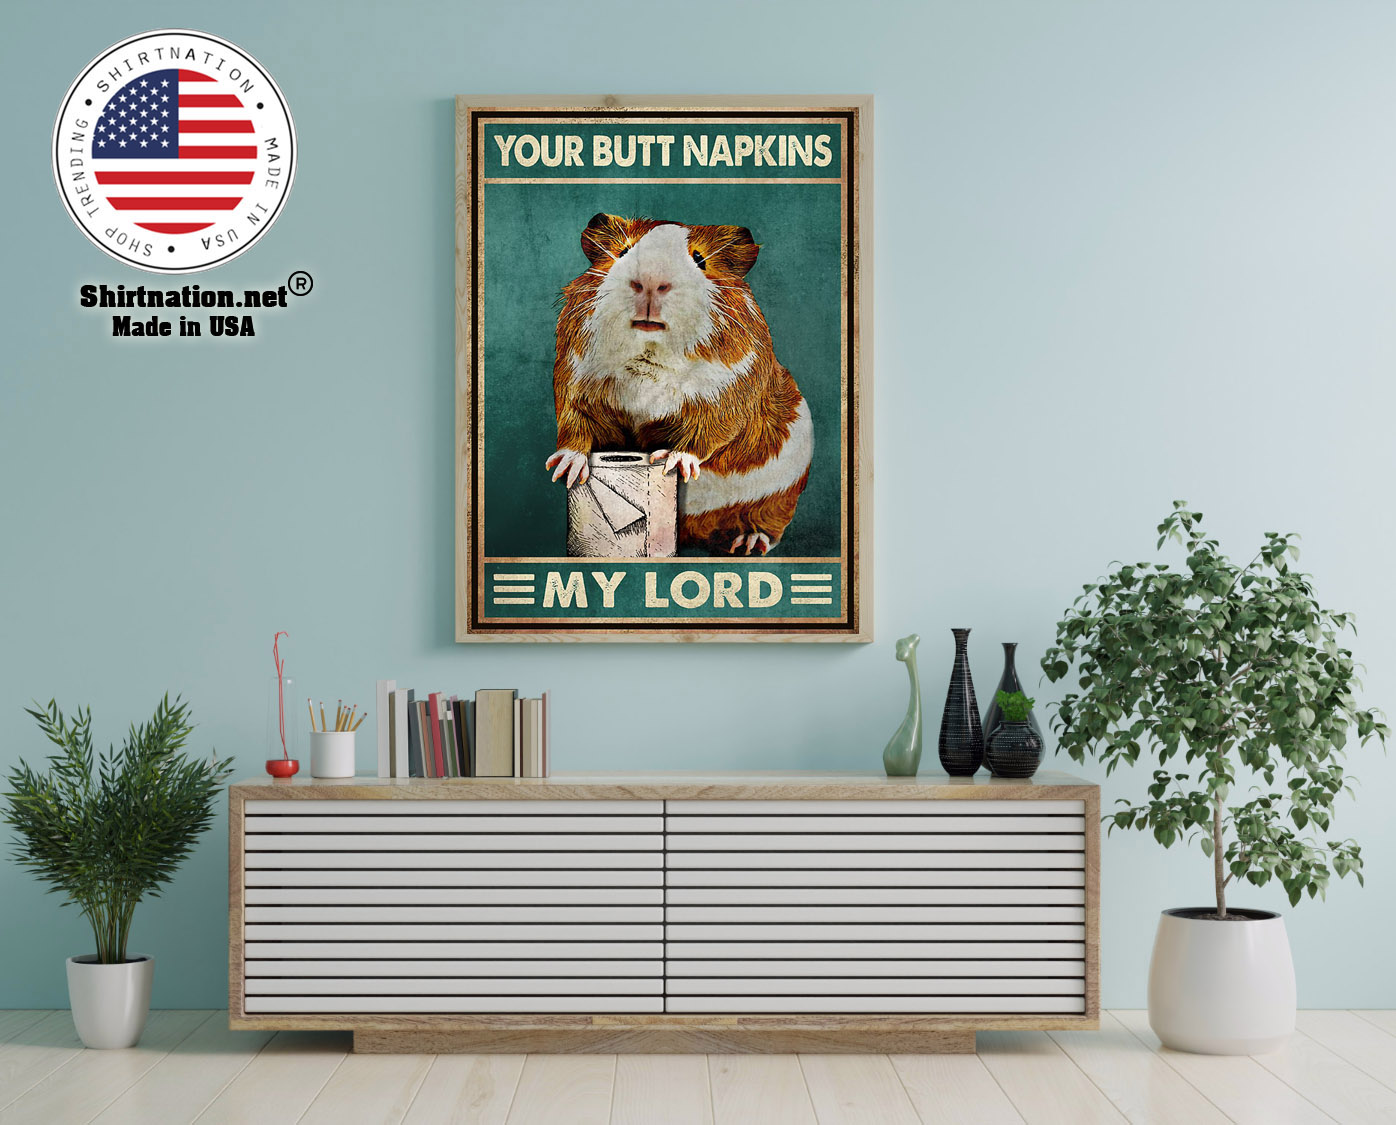 Mouse Guinea pig Your butt napkins my lord poster 12